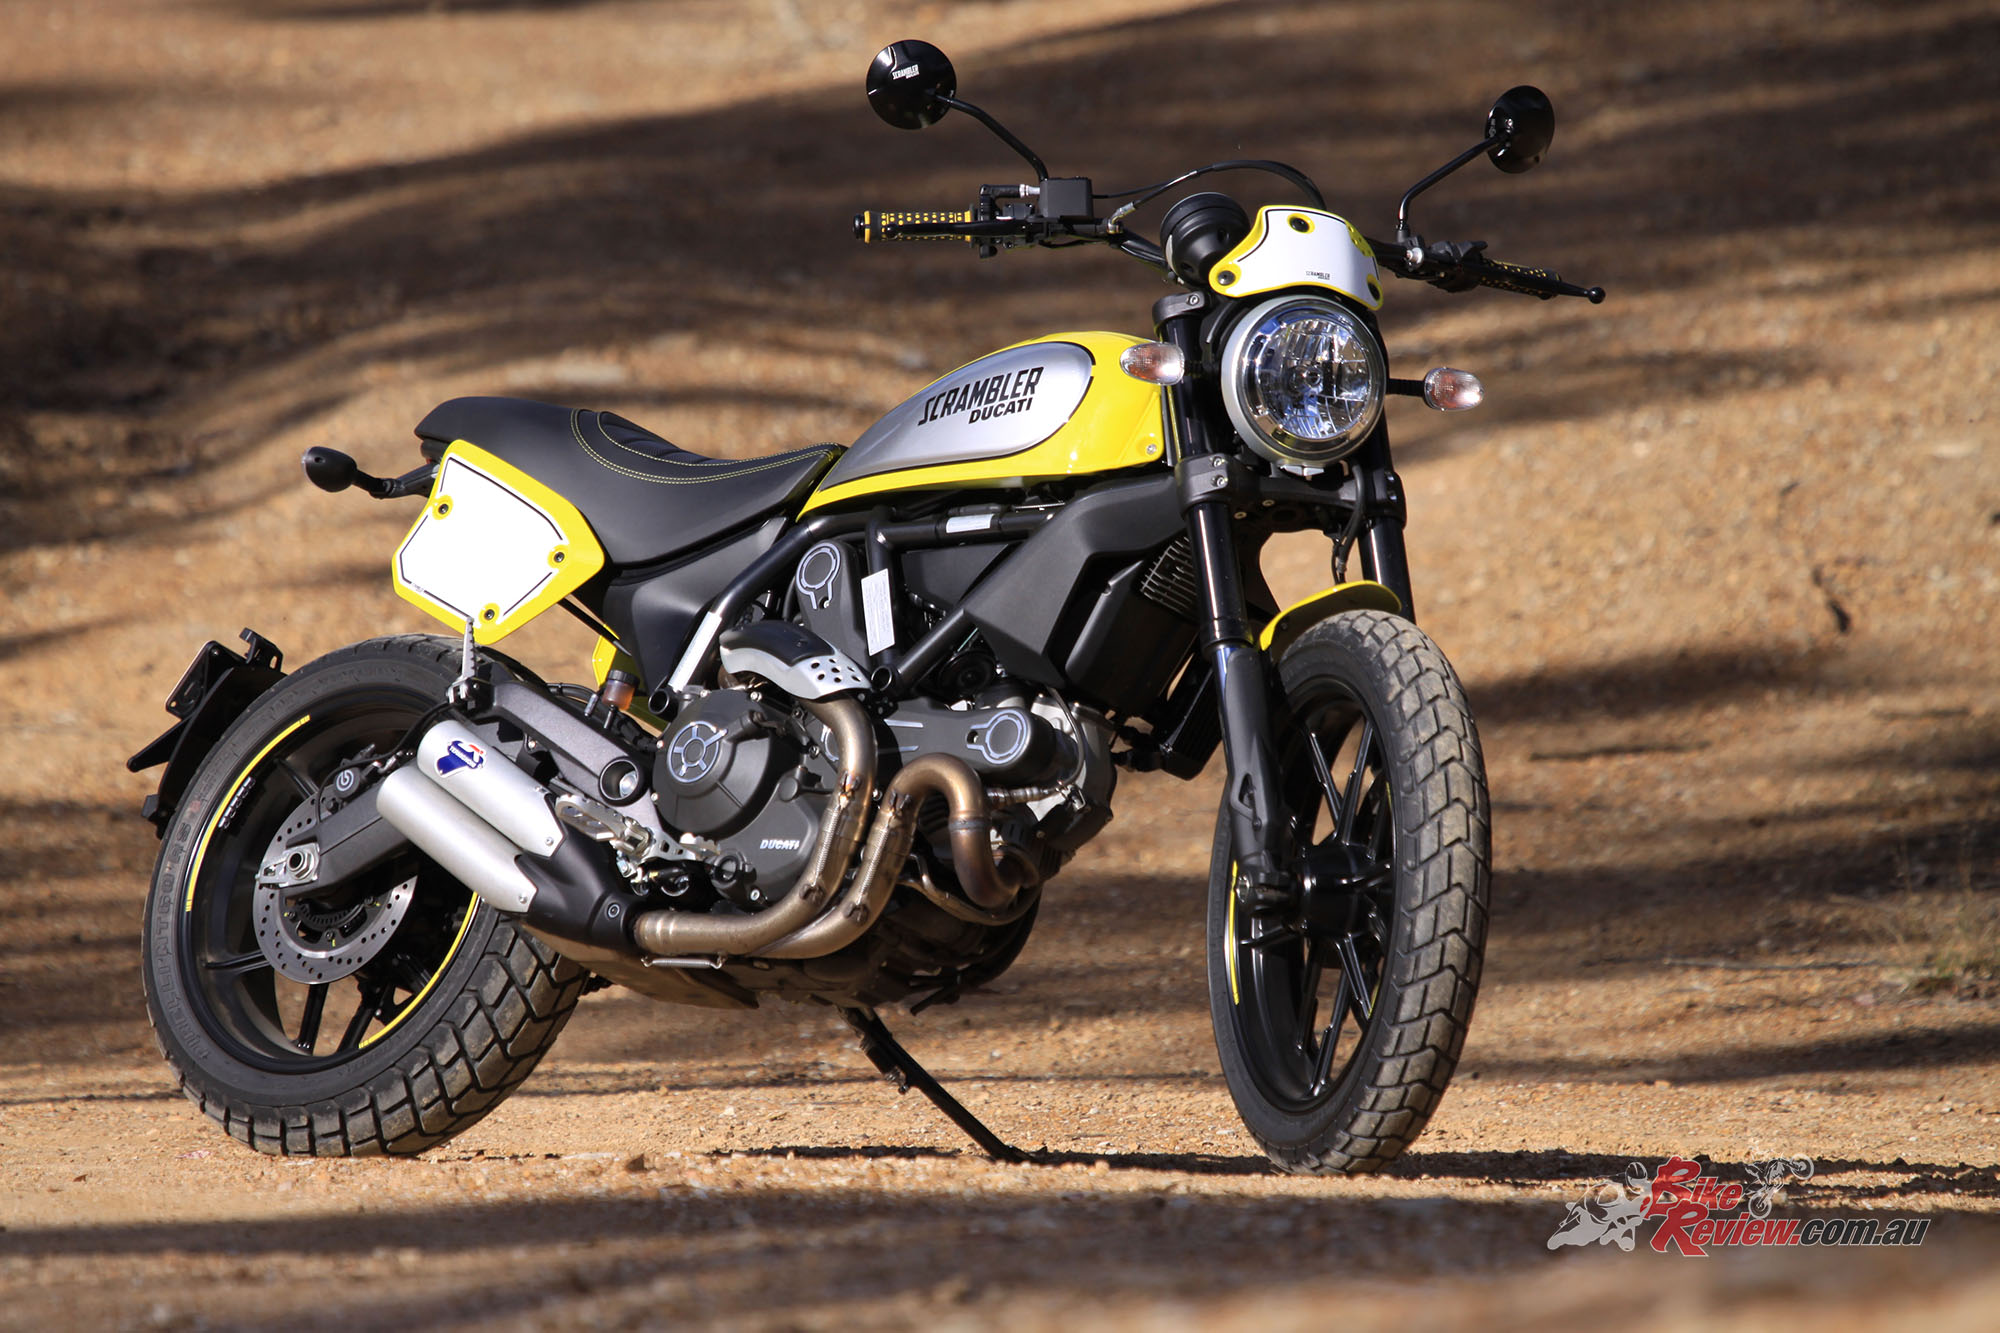 Ducati Scrambler Flat Track Pro Reviews